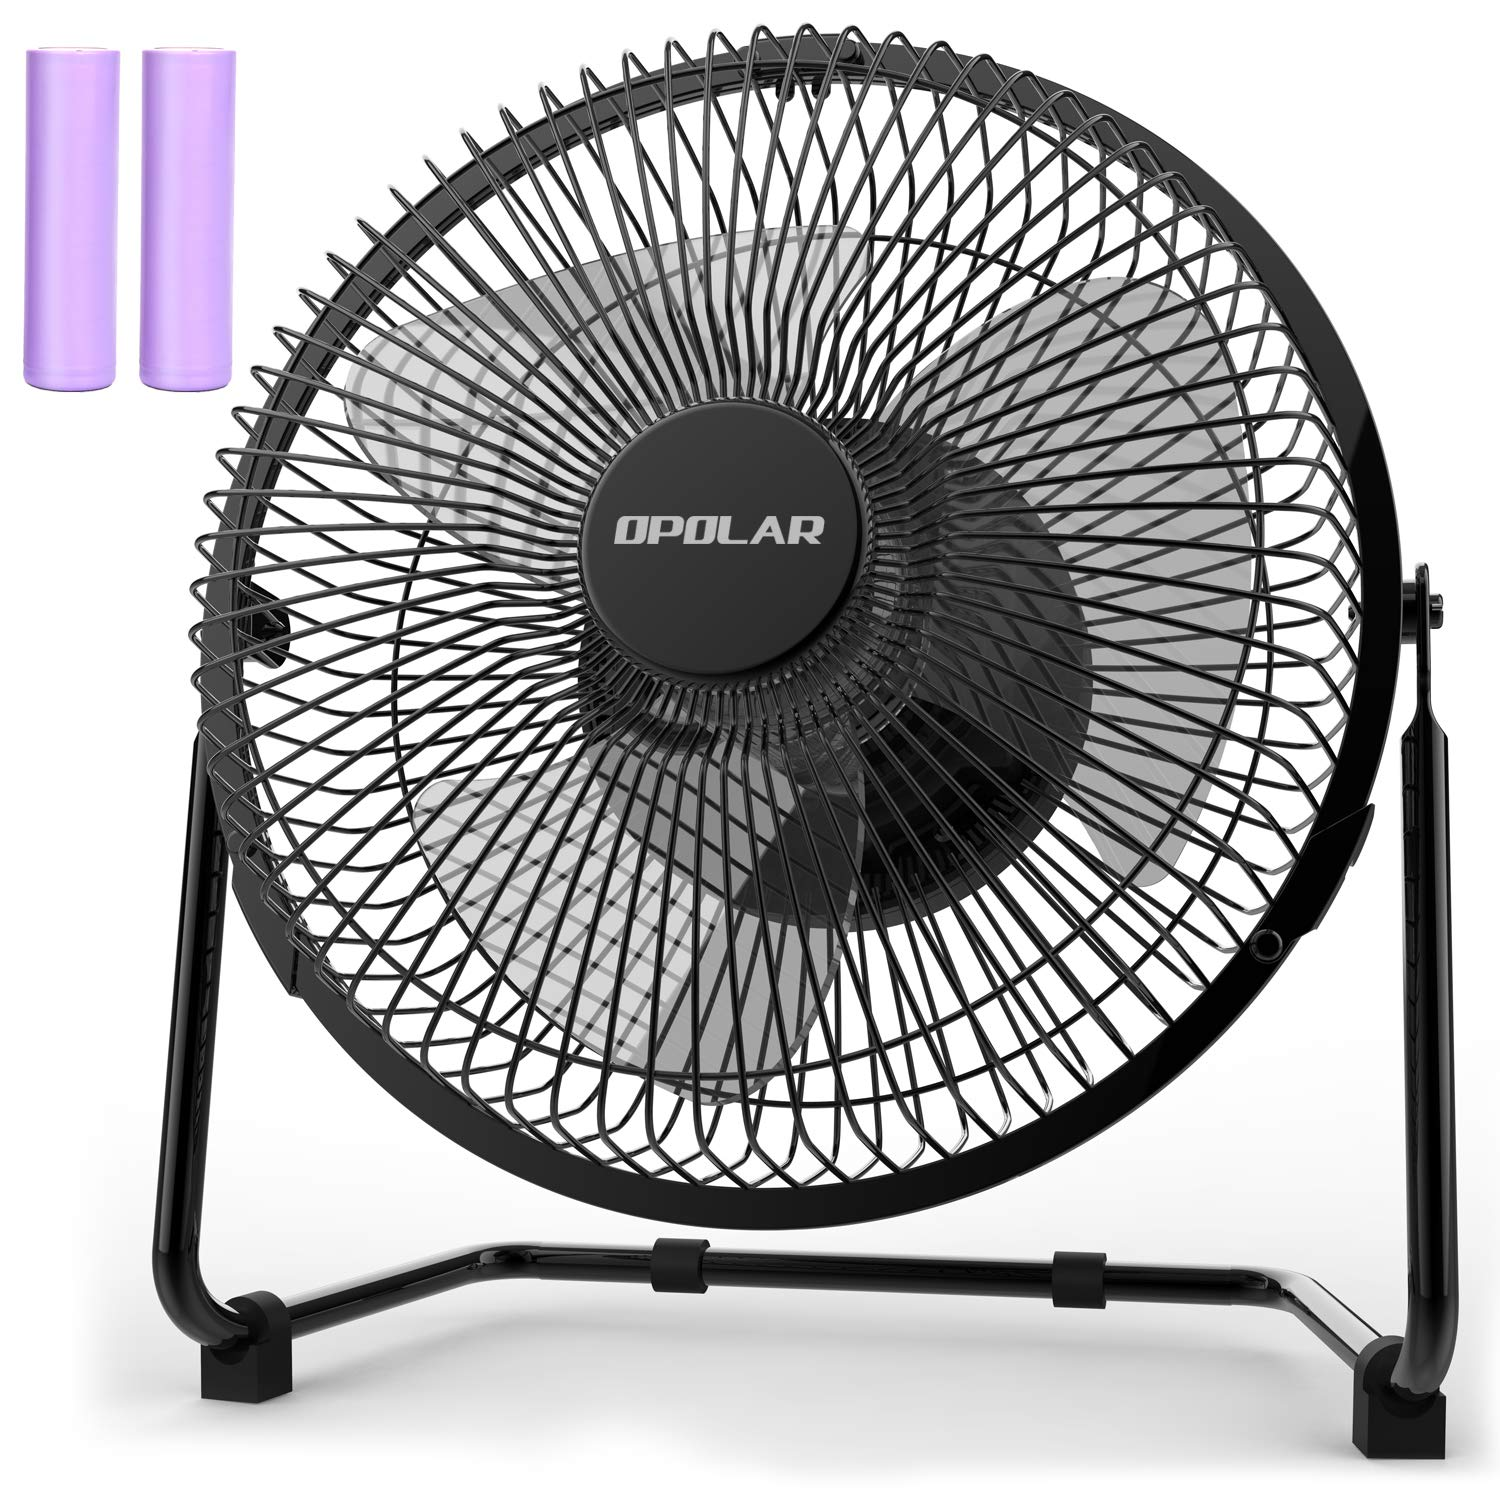 OPOLAR Battery Operated Rechargeable Desk Fan for Home Camping Hurricane, 9 Inch Battery Powered USB Fan with Metal Frame, Quiet Portable Fan with 5200 mAh Capacity & Strong Airflow by OPOLAR